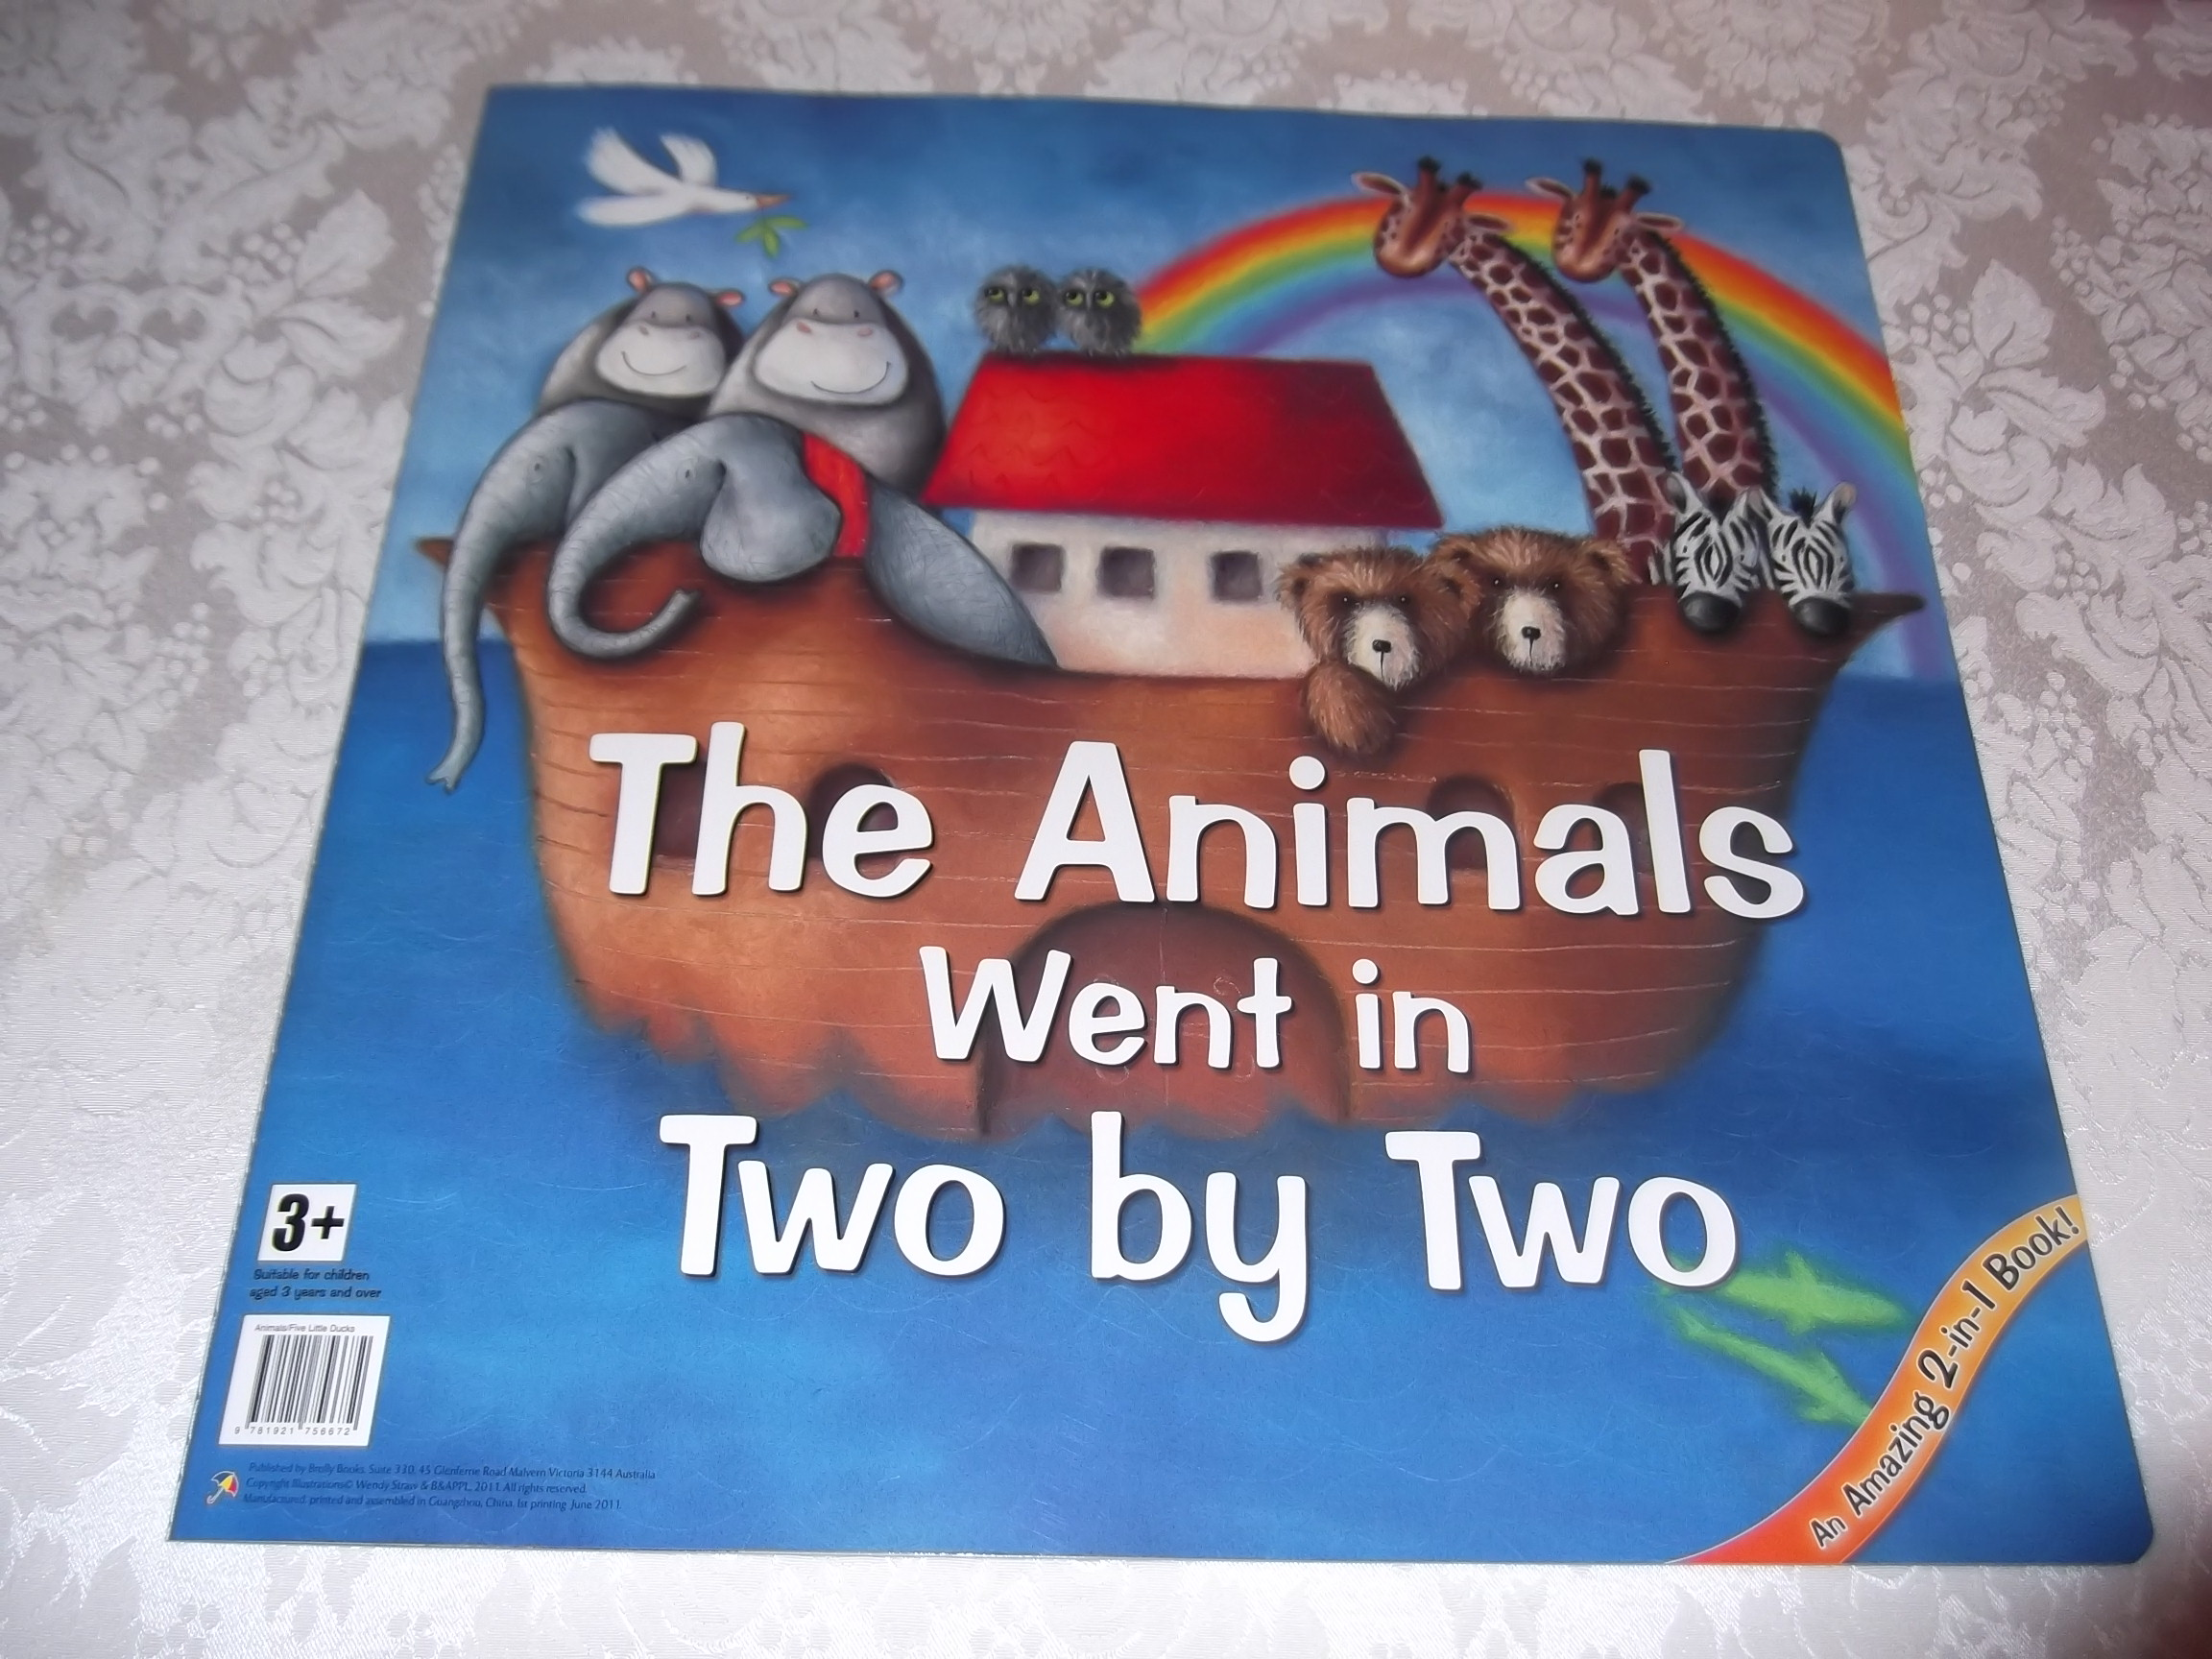 The Animals Went in Two by Two, 5 Little Ducks 2 in 1 Big Book Wendy Straw